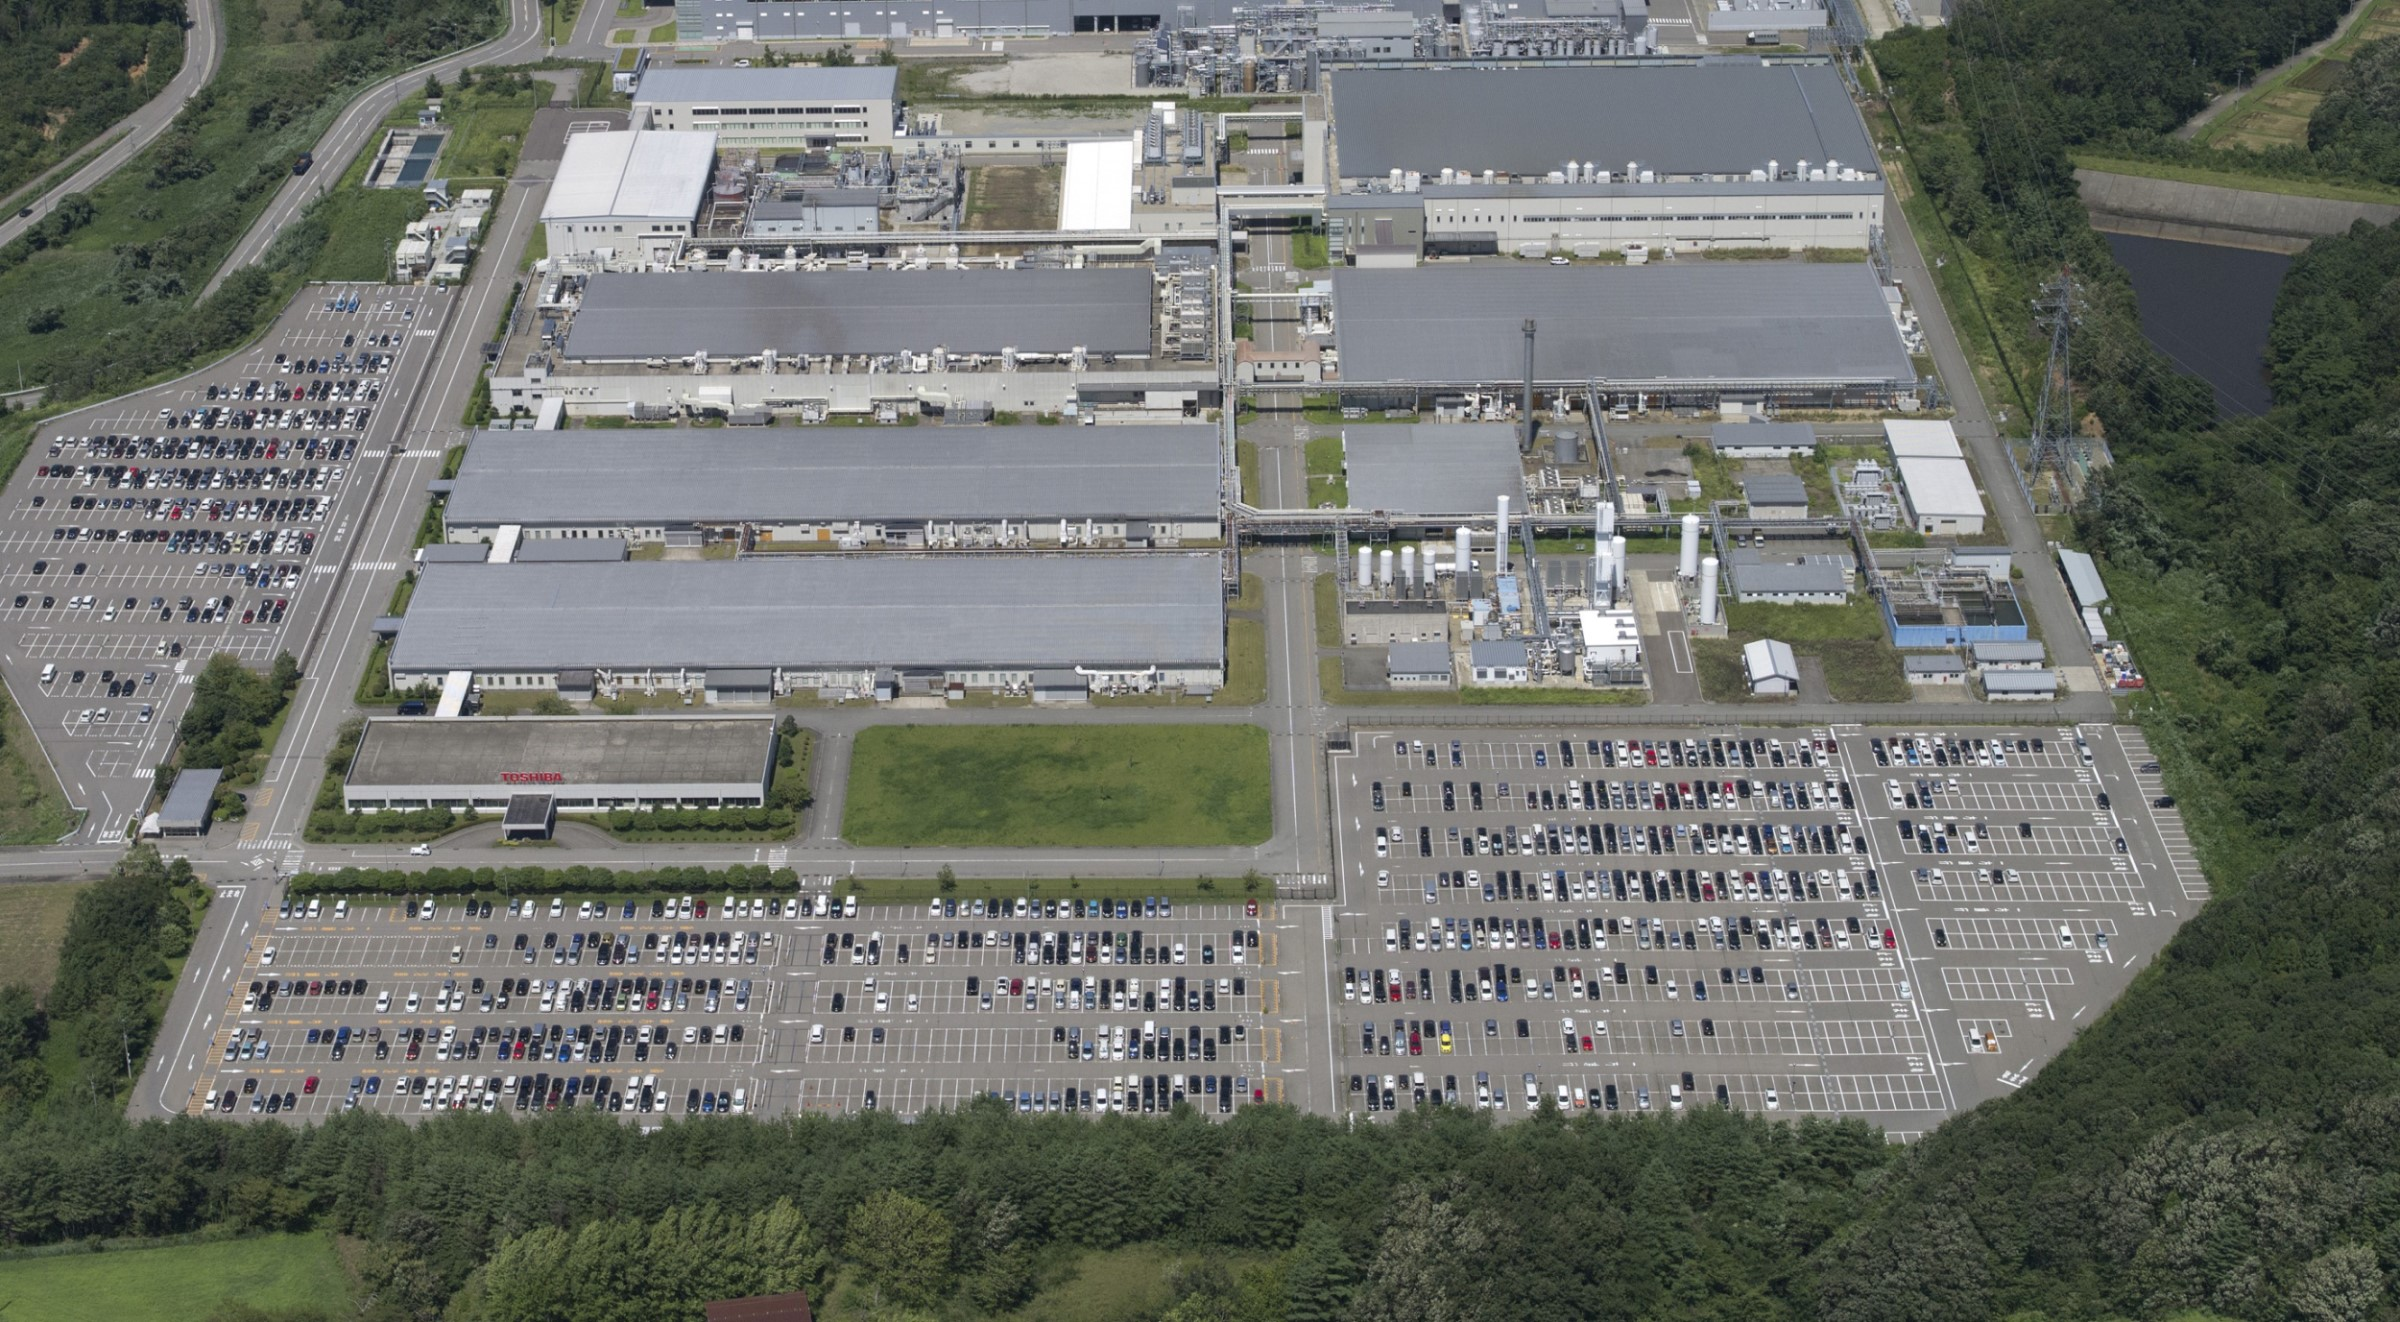 Picture of an aerial view of 300mm wafer facility at Kaga Toshiba Electronics Corporation, in Ishikawa prefecture, Japan